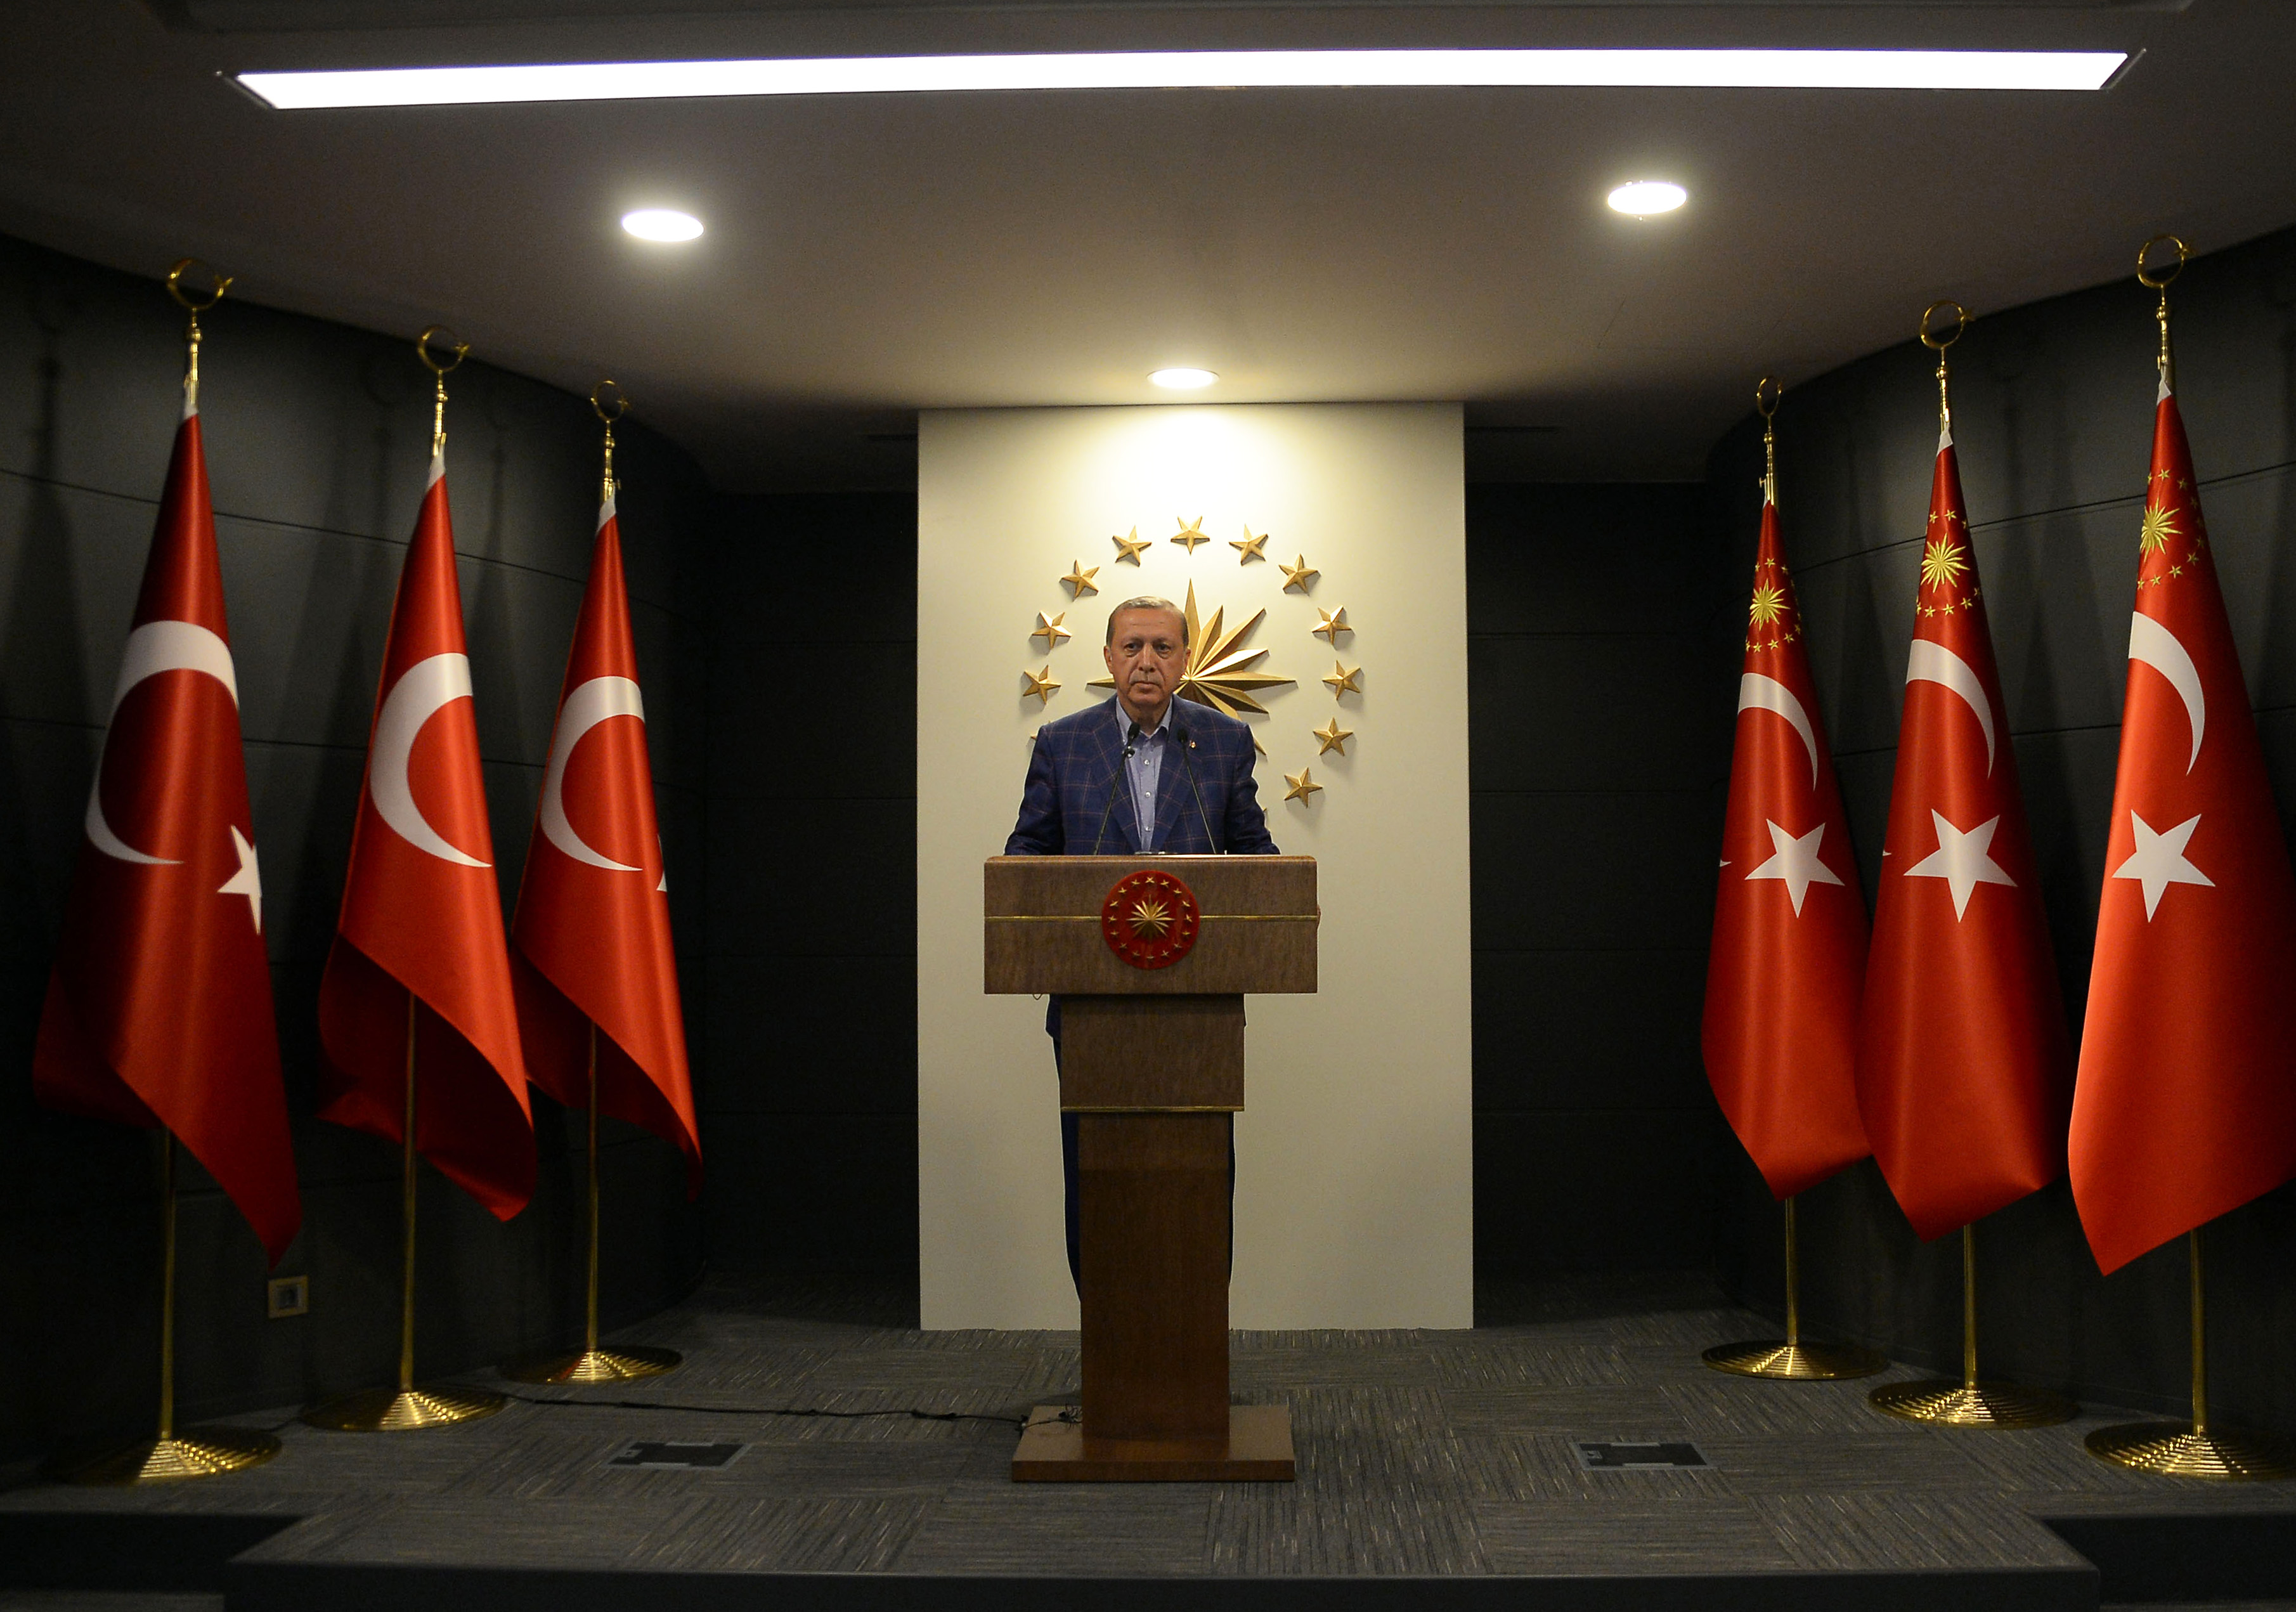 ISTANBUL, April 16, 2017 Turkish President Recep Tayyip Erdogan makes statements in Istanbul, Turkey, on April 16, 2017. Turkish President Recep Tayyip Erdogan declared on Sunday night that the proposed constitutional changes were accepted in a referendum, paying the way for the country to introduce the presidential system. (Credit Image: Global Look Press via ZUMA Press)